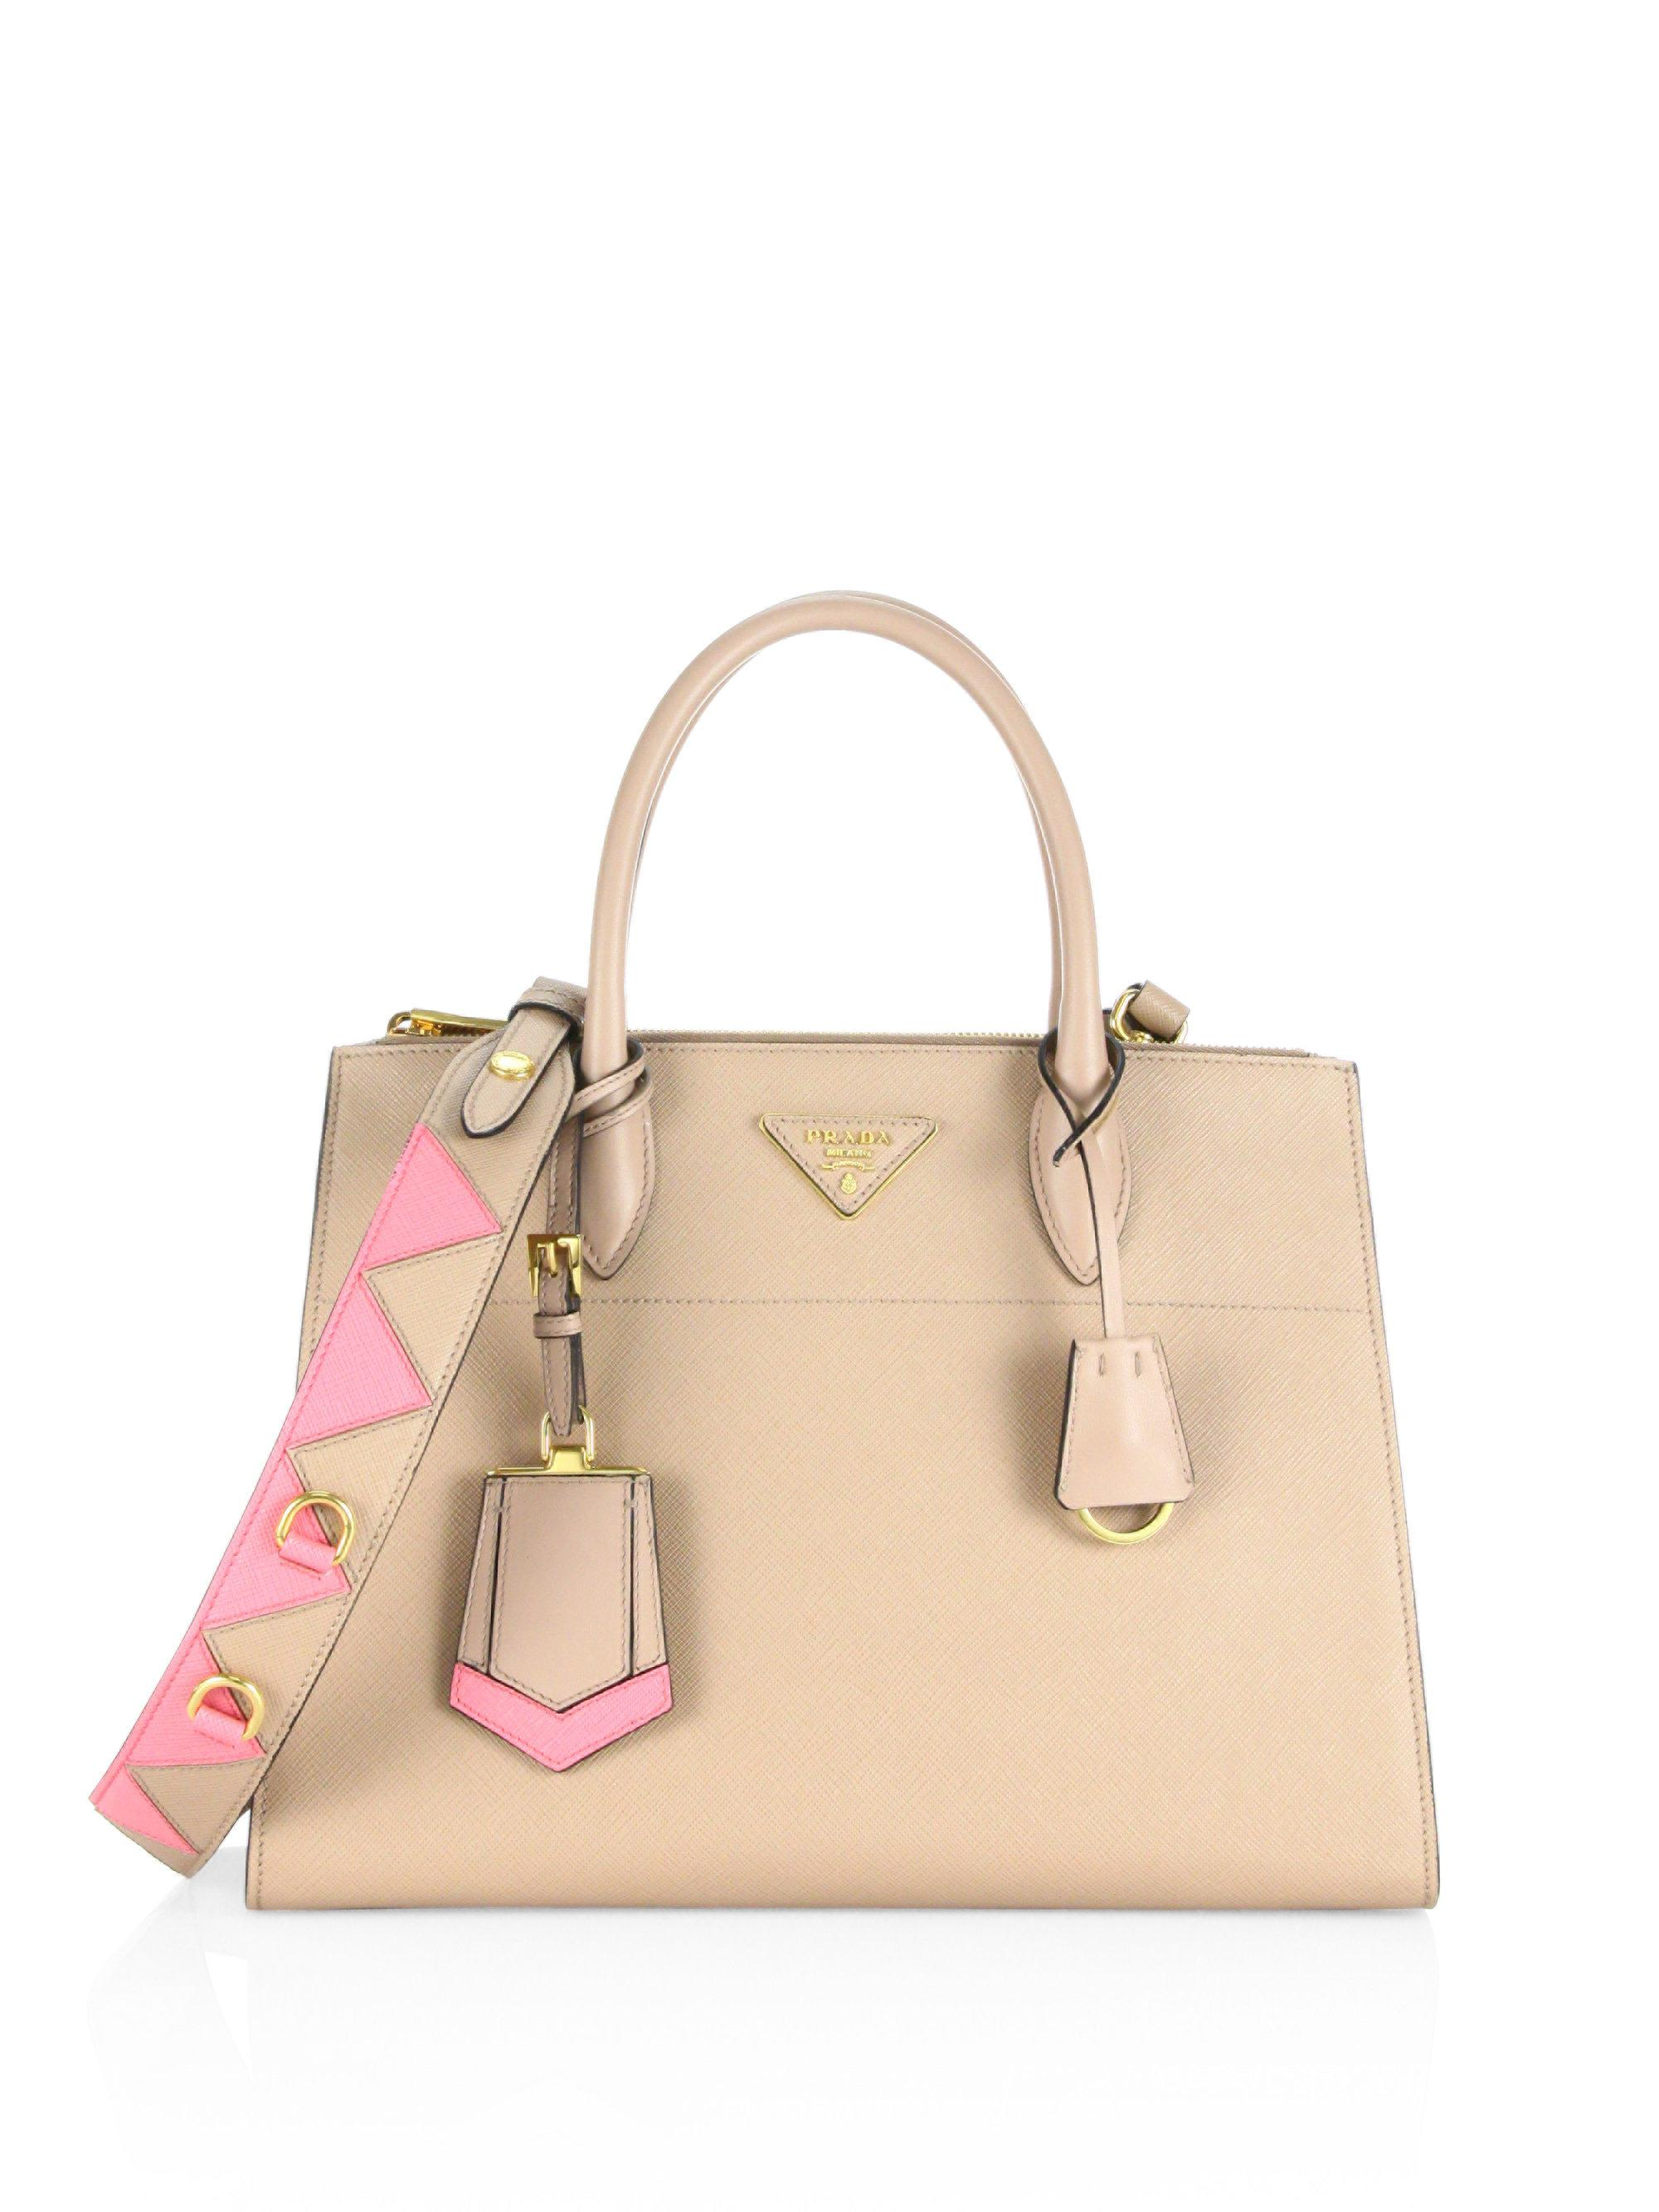 a186e5d04cad Lyst - Prada Paradigme Saffiano Leather Tote in Pink